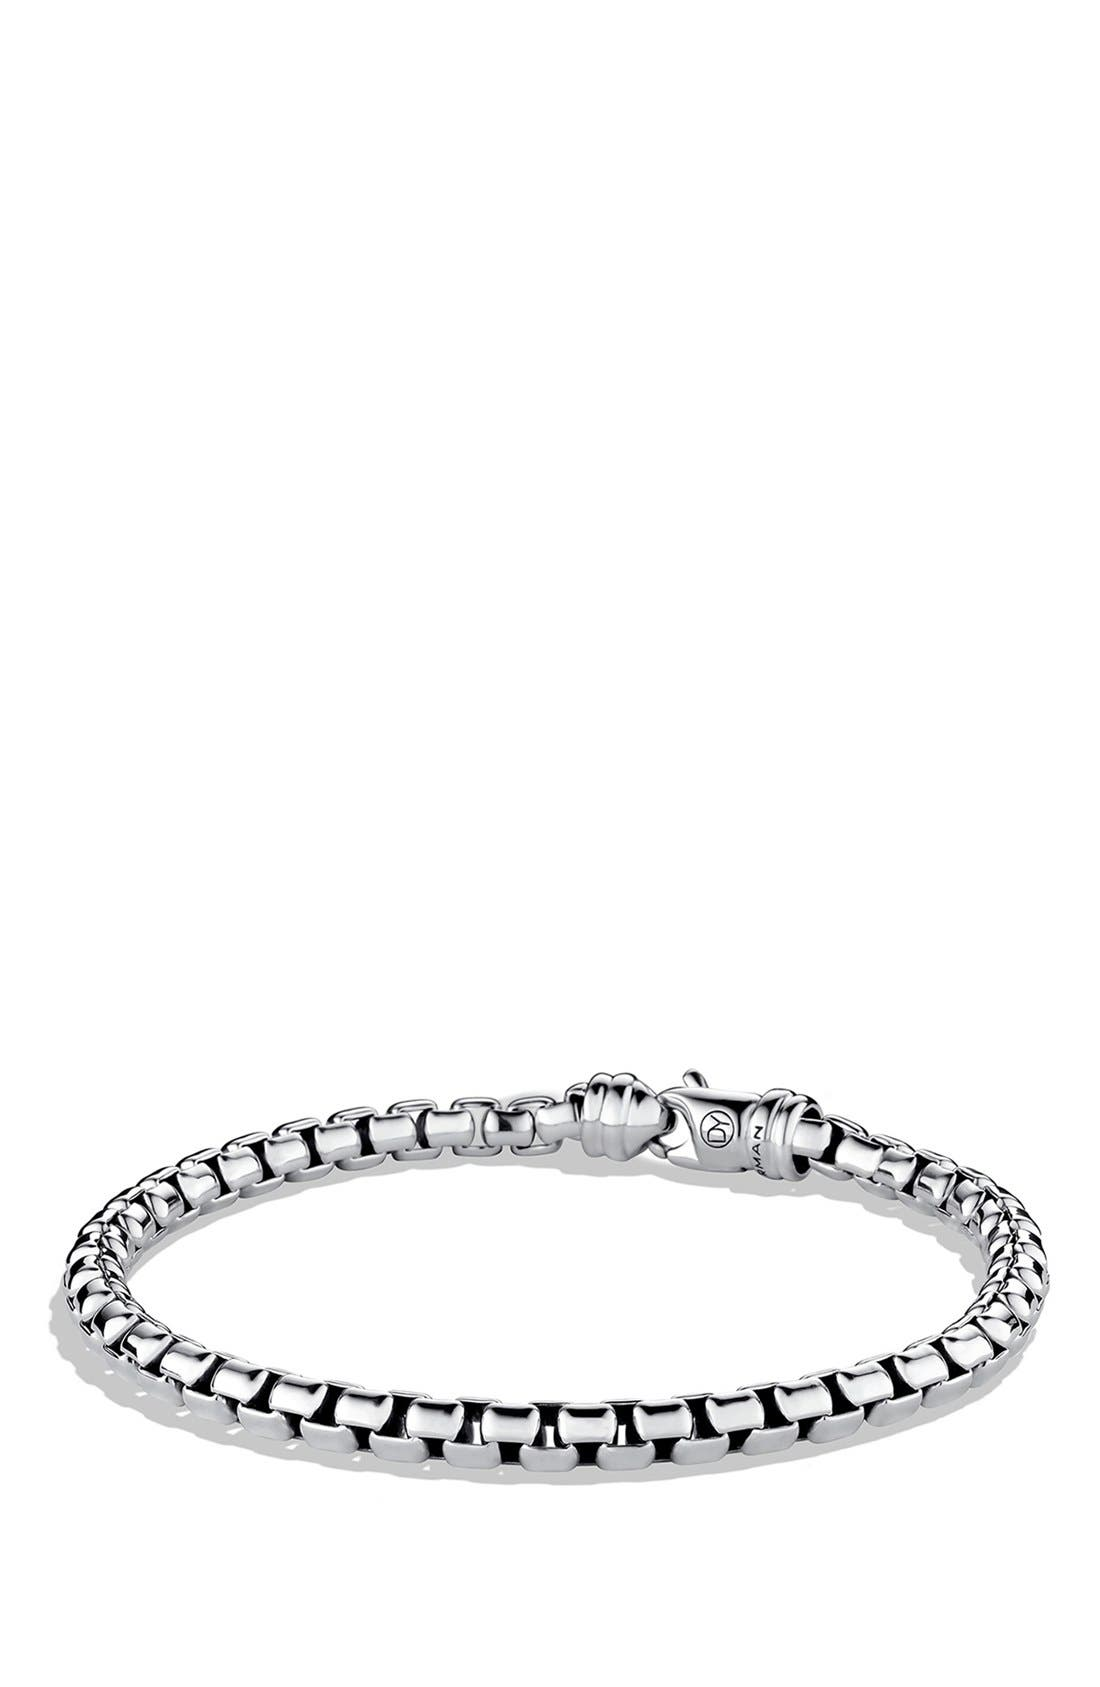 Main Image - David Yurman 'Chain' Large Link Box Chain Bracelet